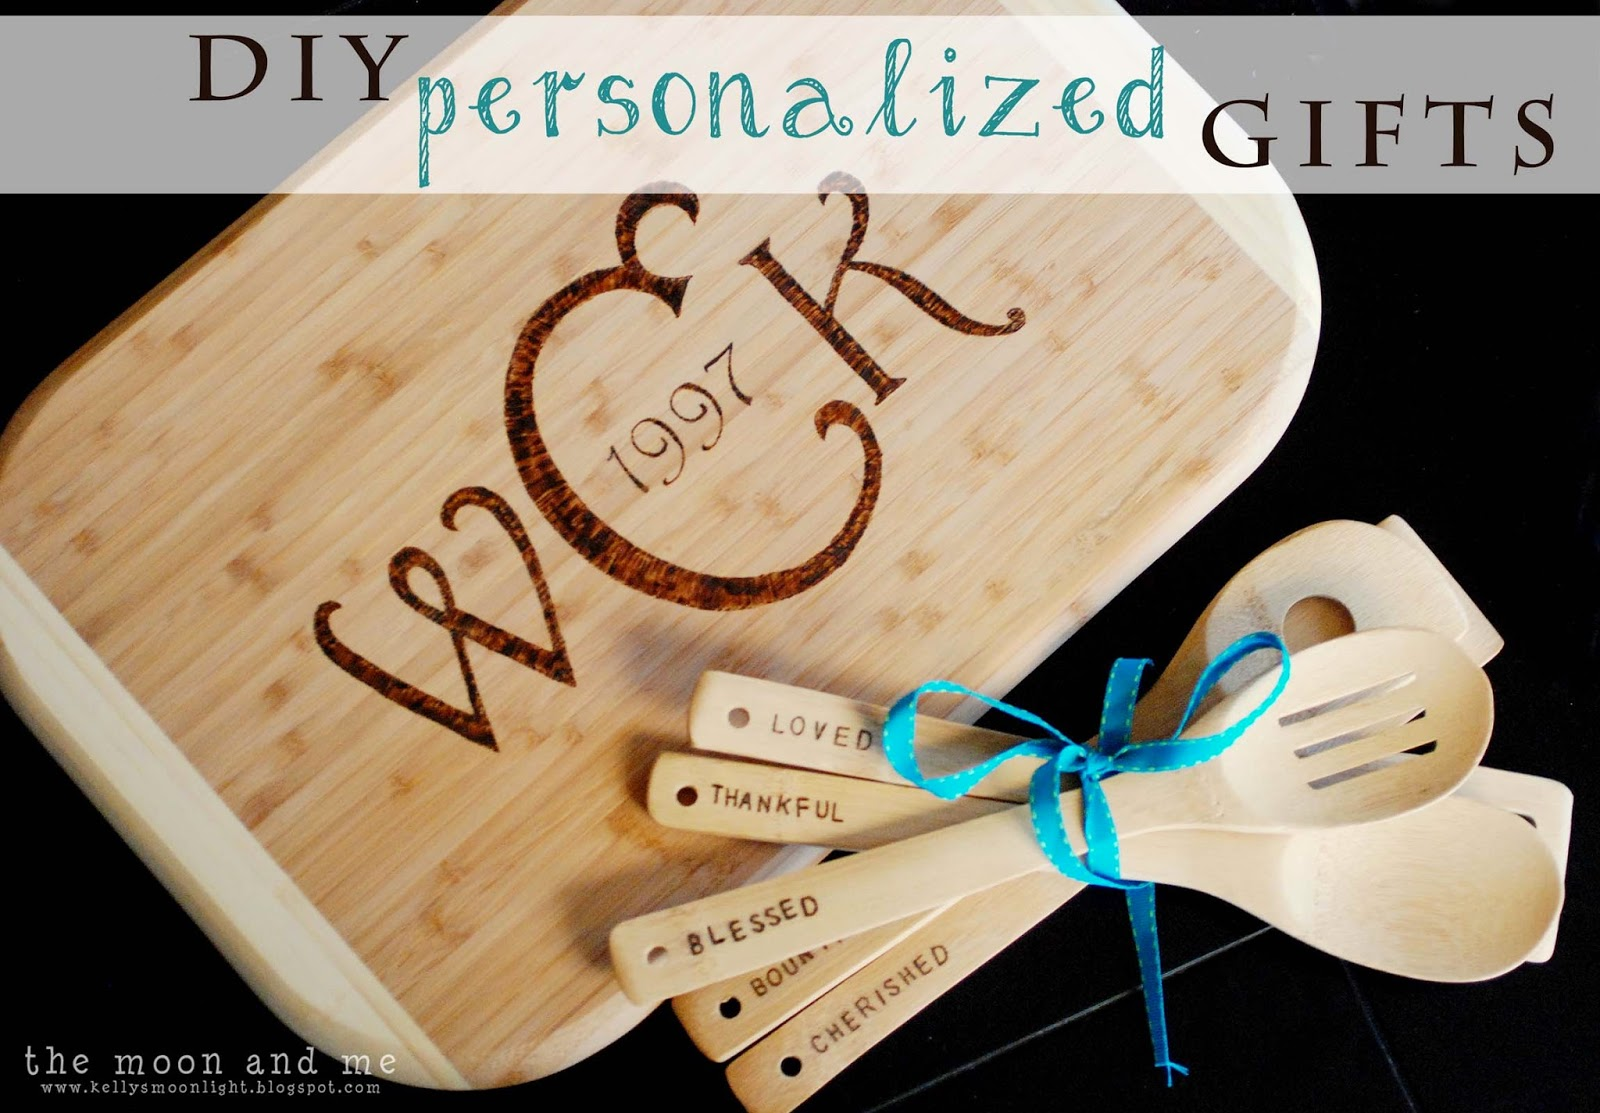 The Moon And Me Diy Personalized Cutting Board, Kitchen Ideas